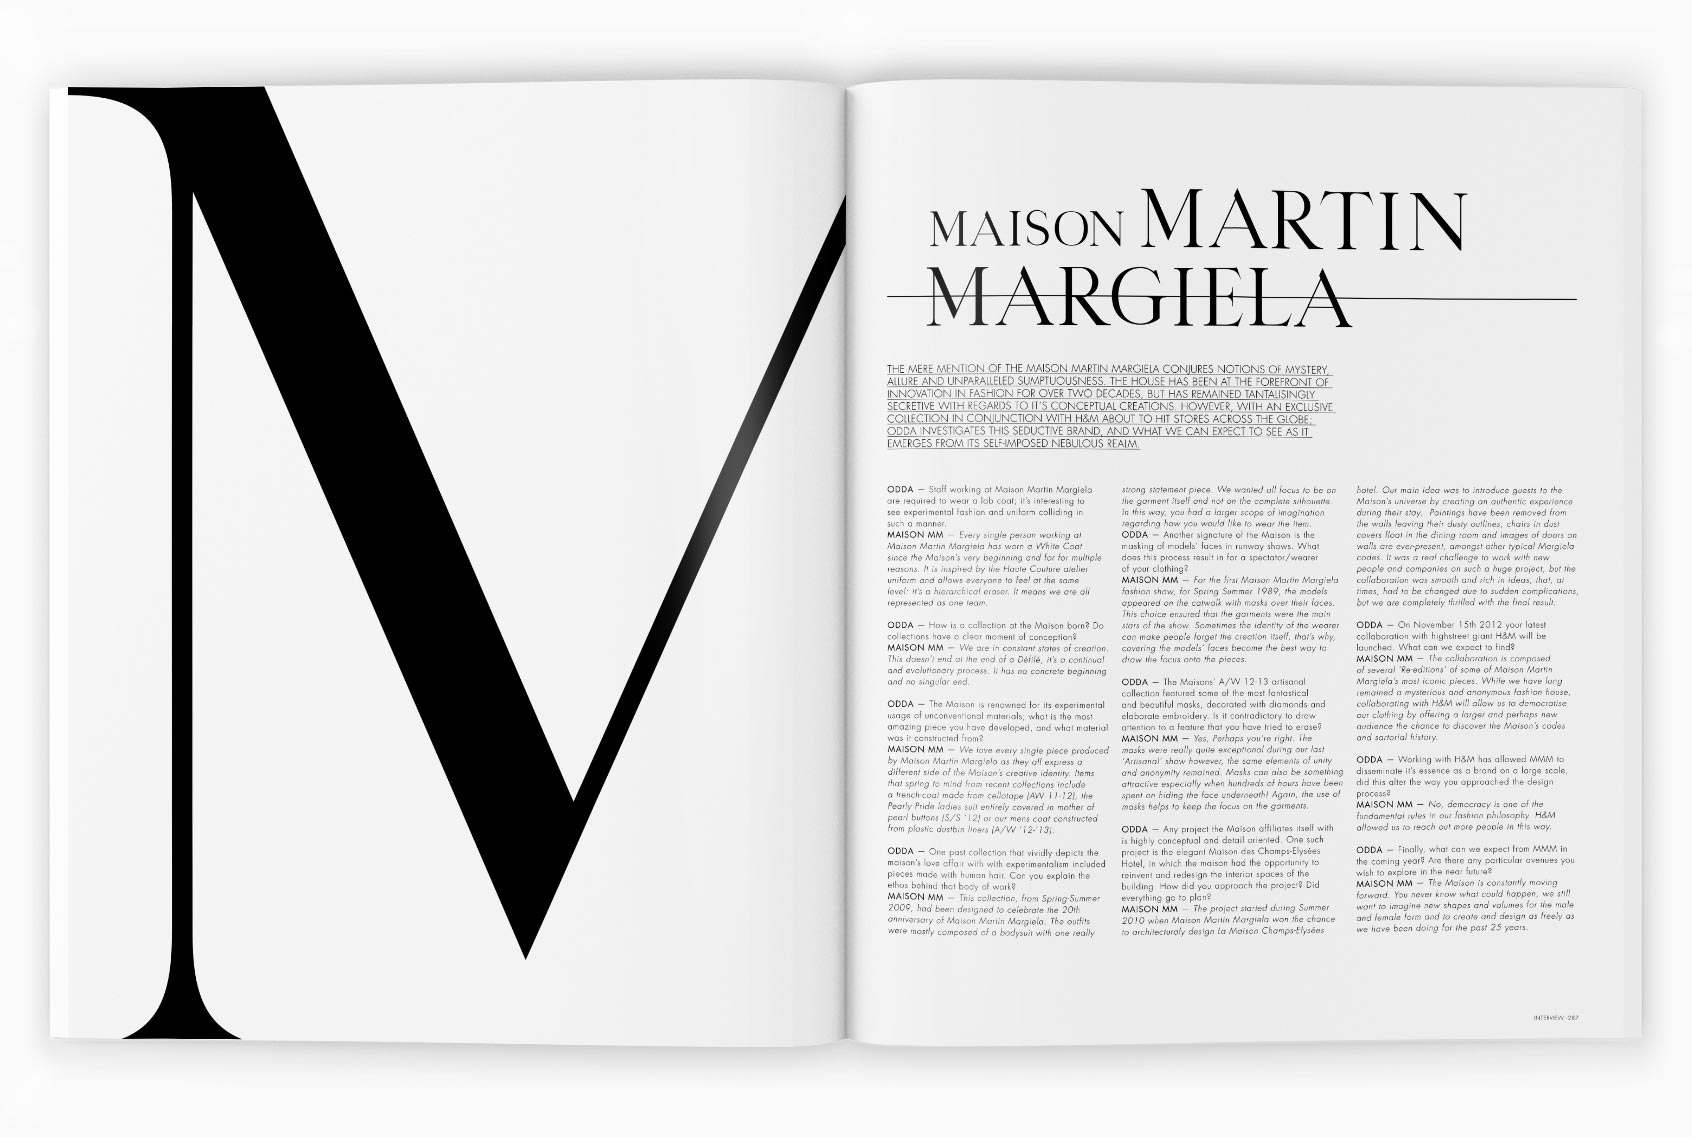 Manuel Astorga editorial design agency